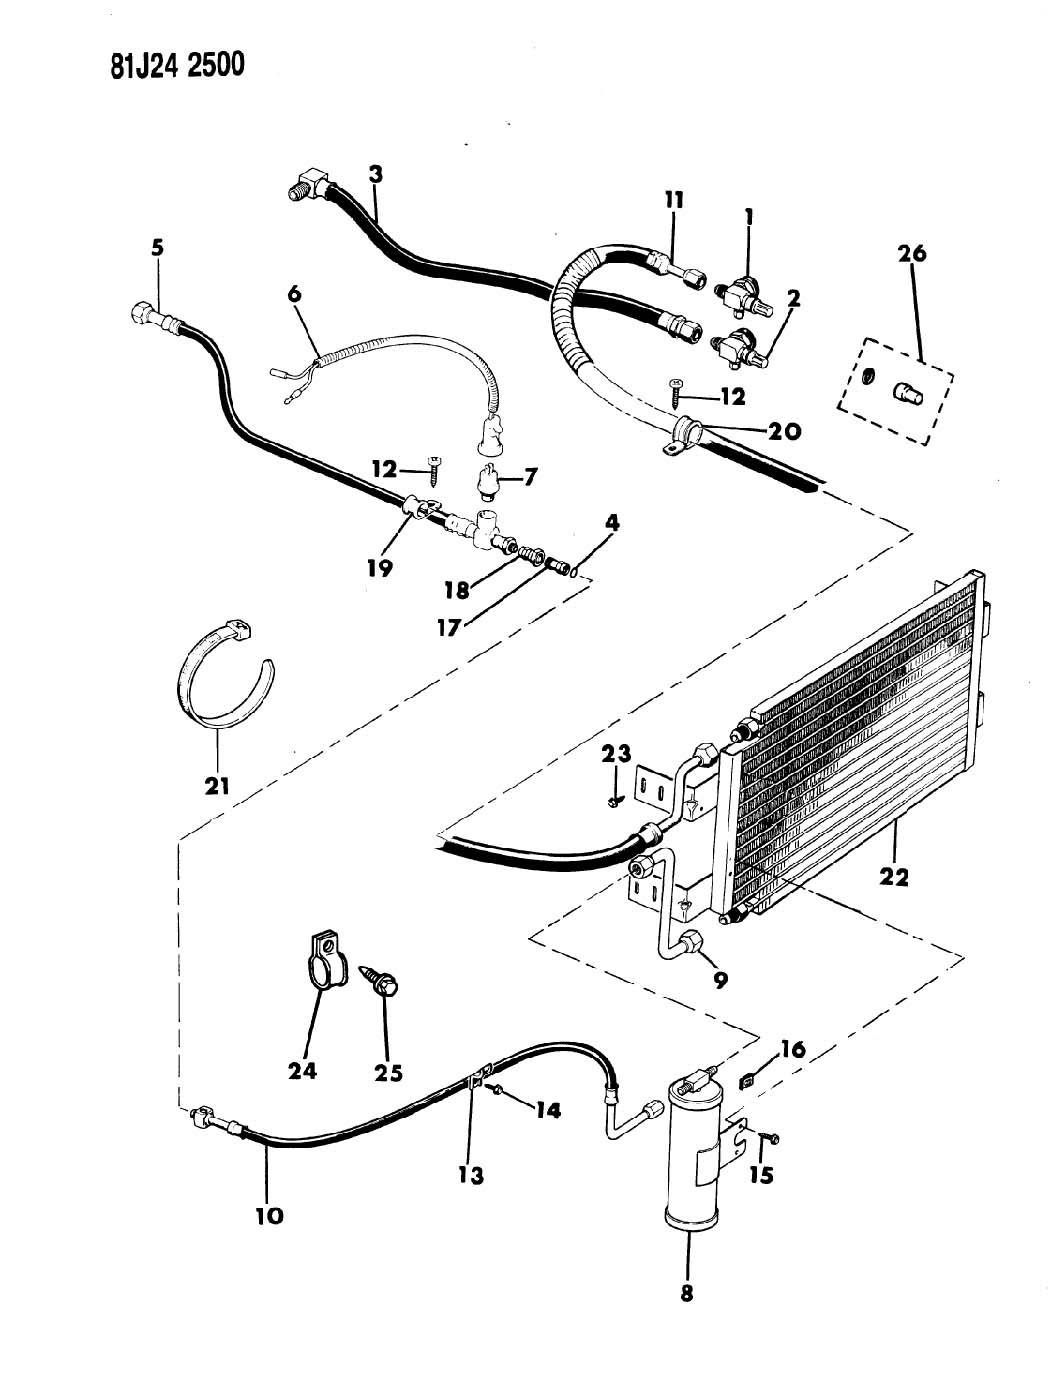 Mitsubishi Starion Wiring Diagram And Engine 1987 Porsche 944 Fuse Box Lotus Evora As Well Type 944944 Turbo S Model 87 She